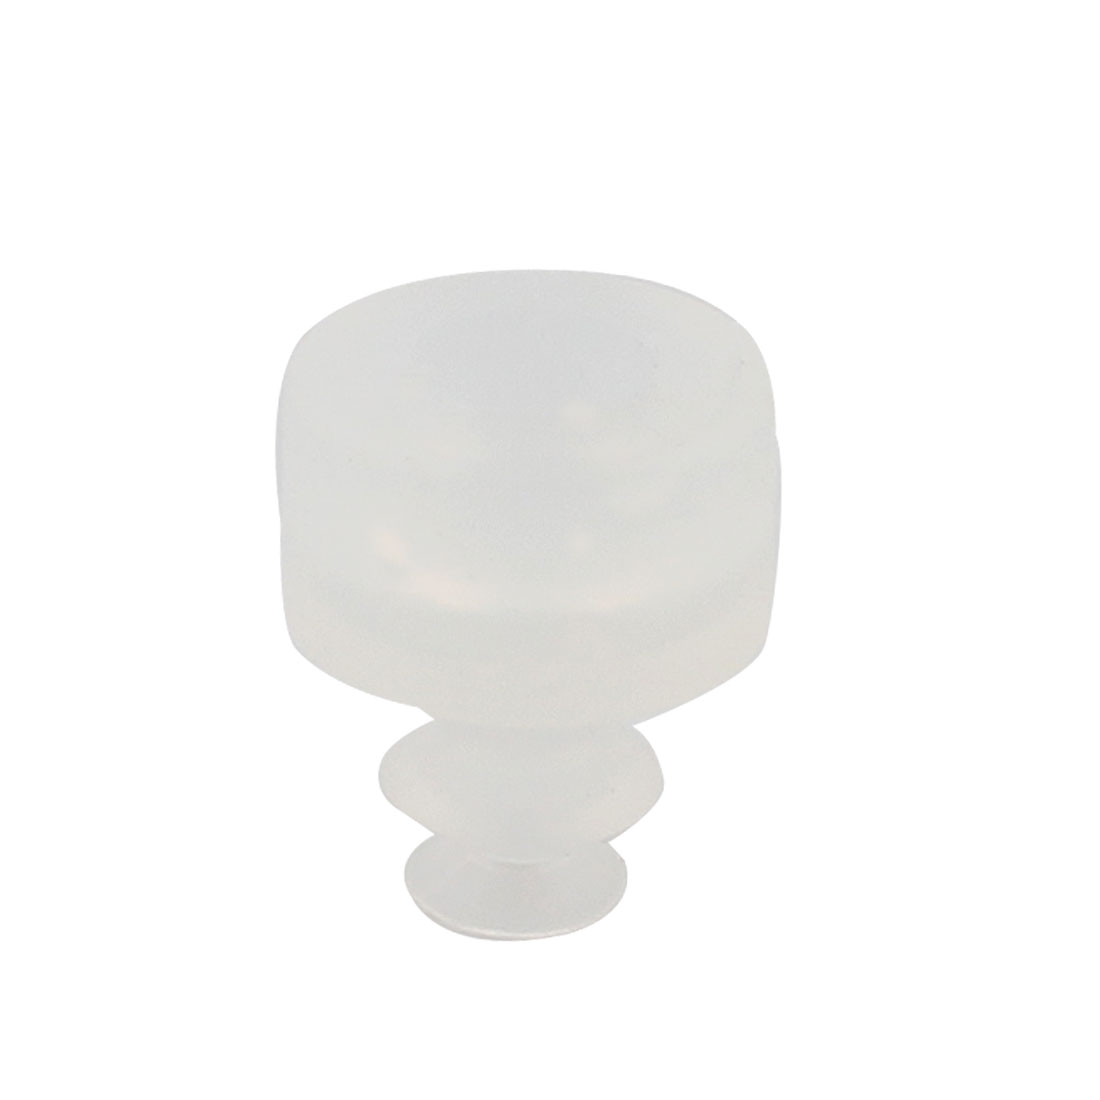 "0.24"" Outside Diameter Soft Silicone Vacuum Suction Cup Filter"